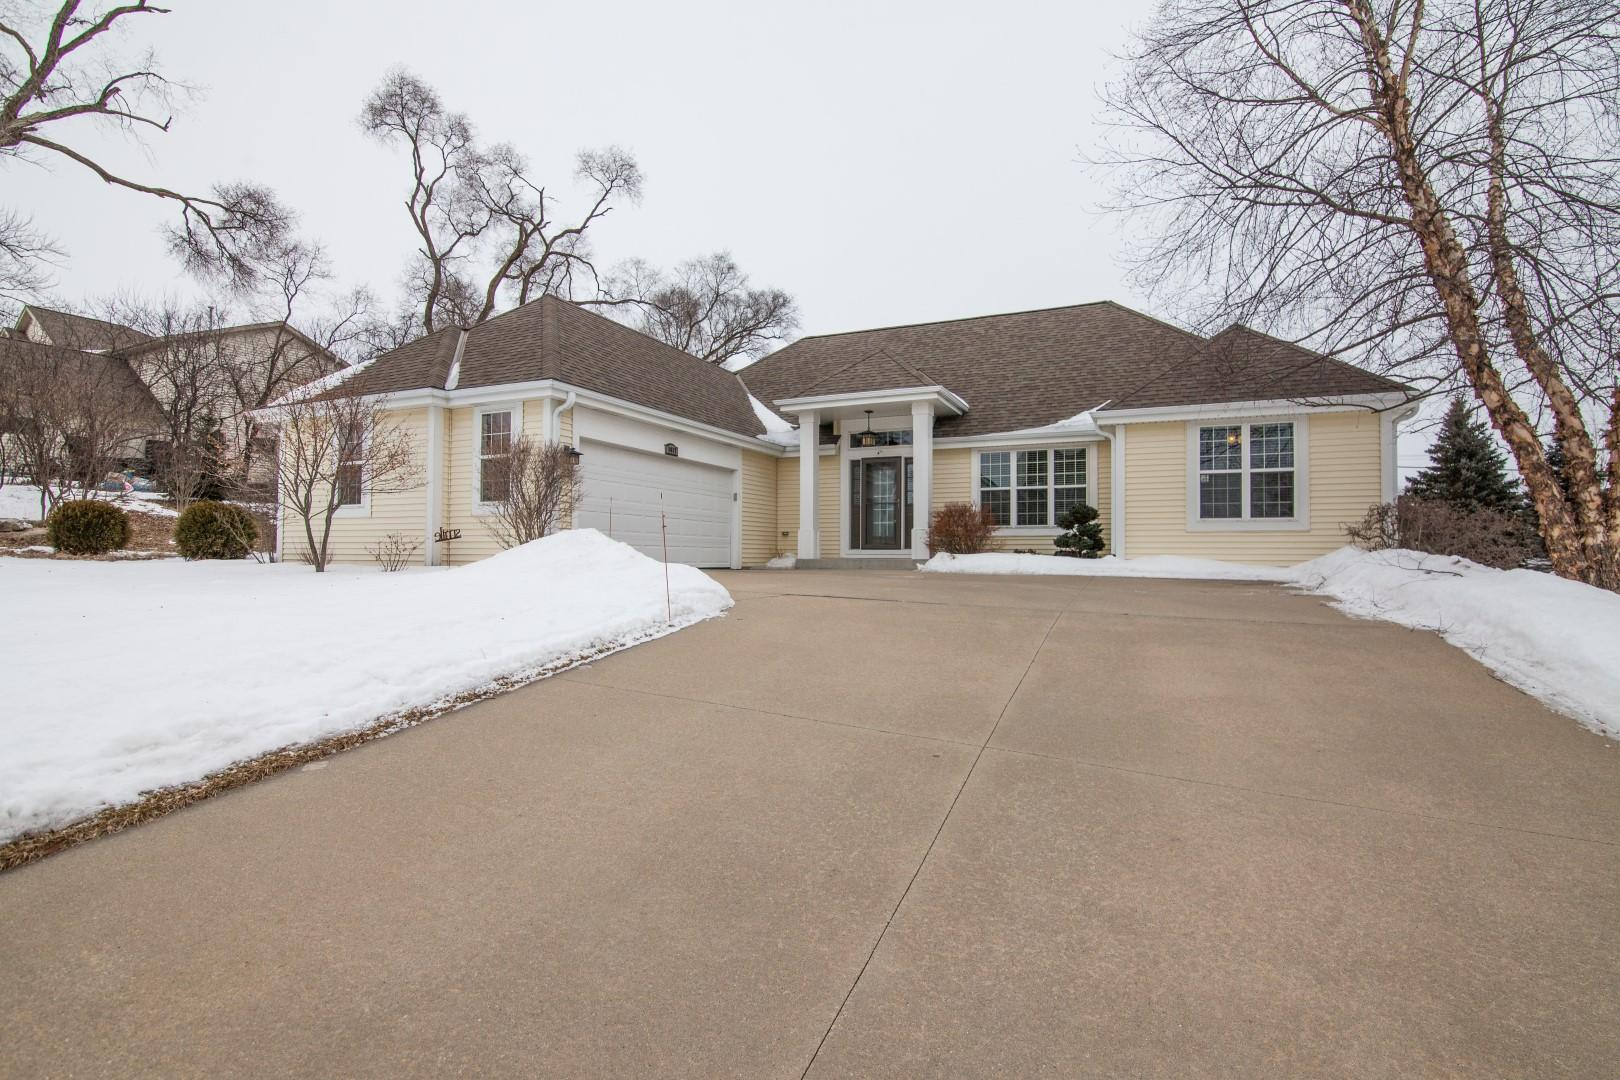 1417 Clearwater Dr, Oconomowoc, Wisconsin 53066, 3 Bedrooms Bedrooms, 10 Rooms Rooms,2 BathroomsBathrooms,Single-Family,For Sale,Clearwater Dr,1624494